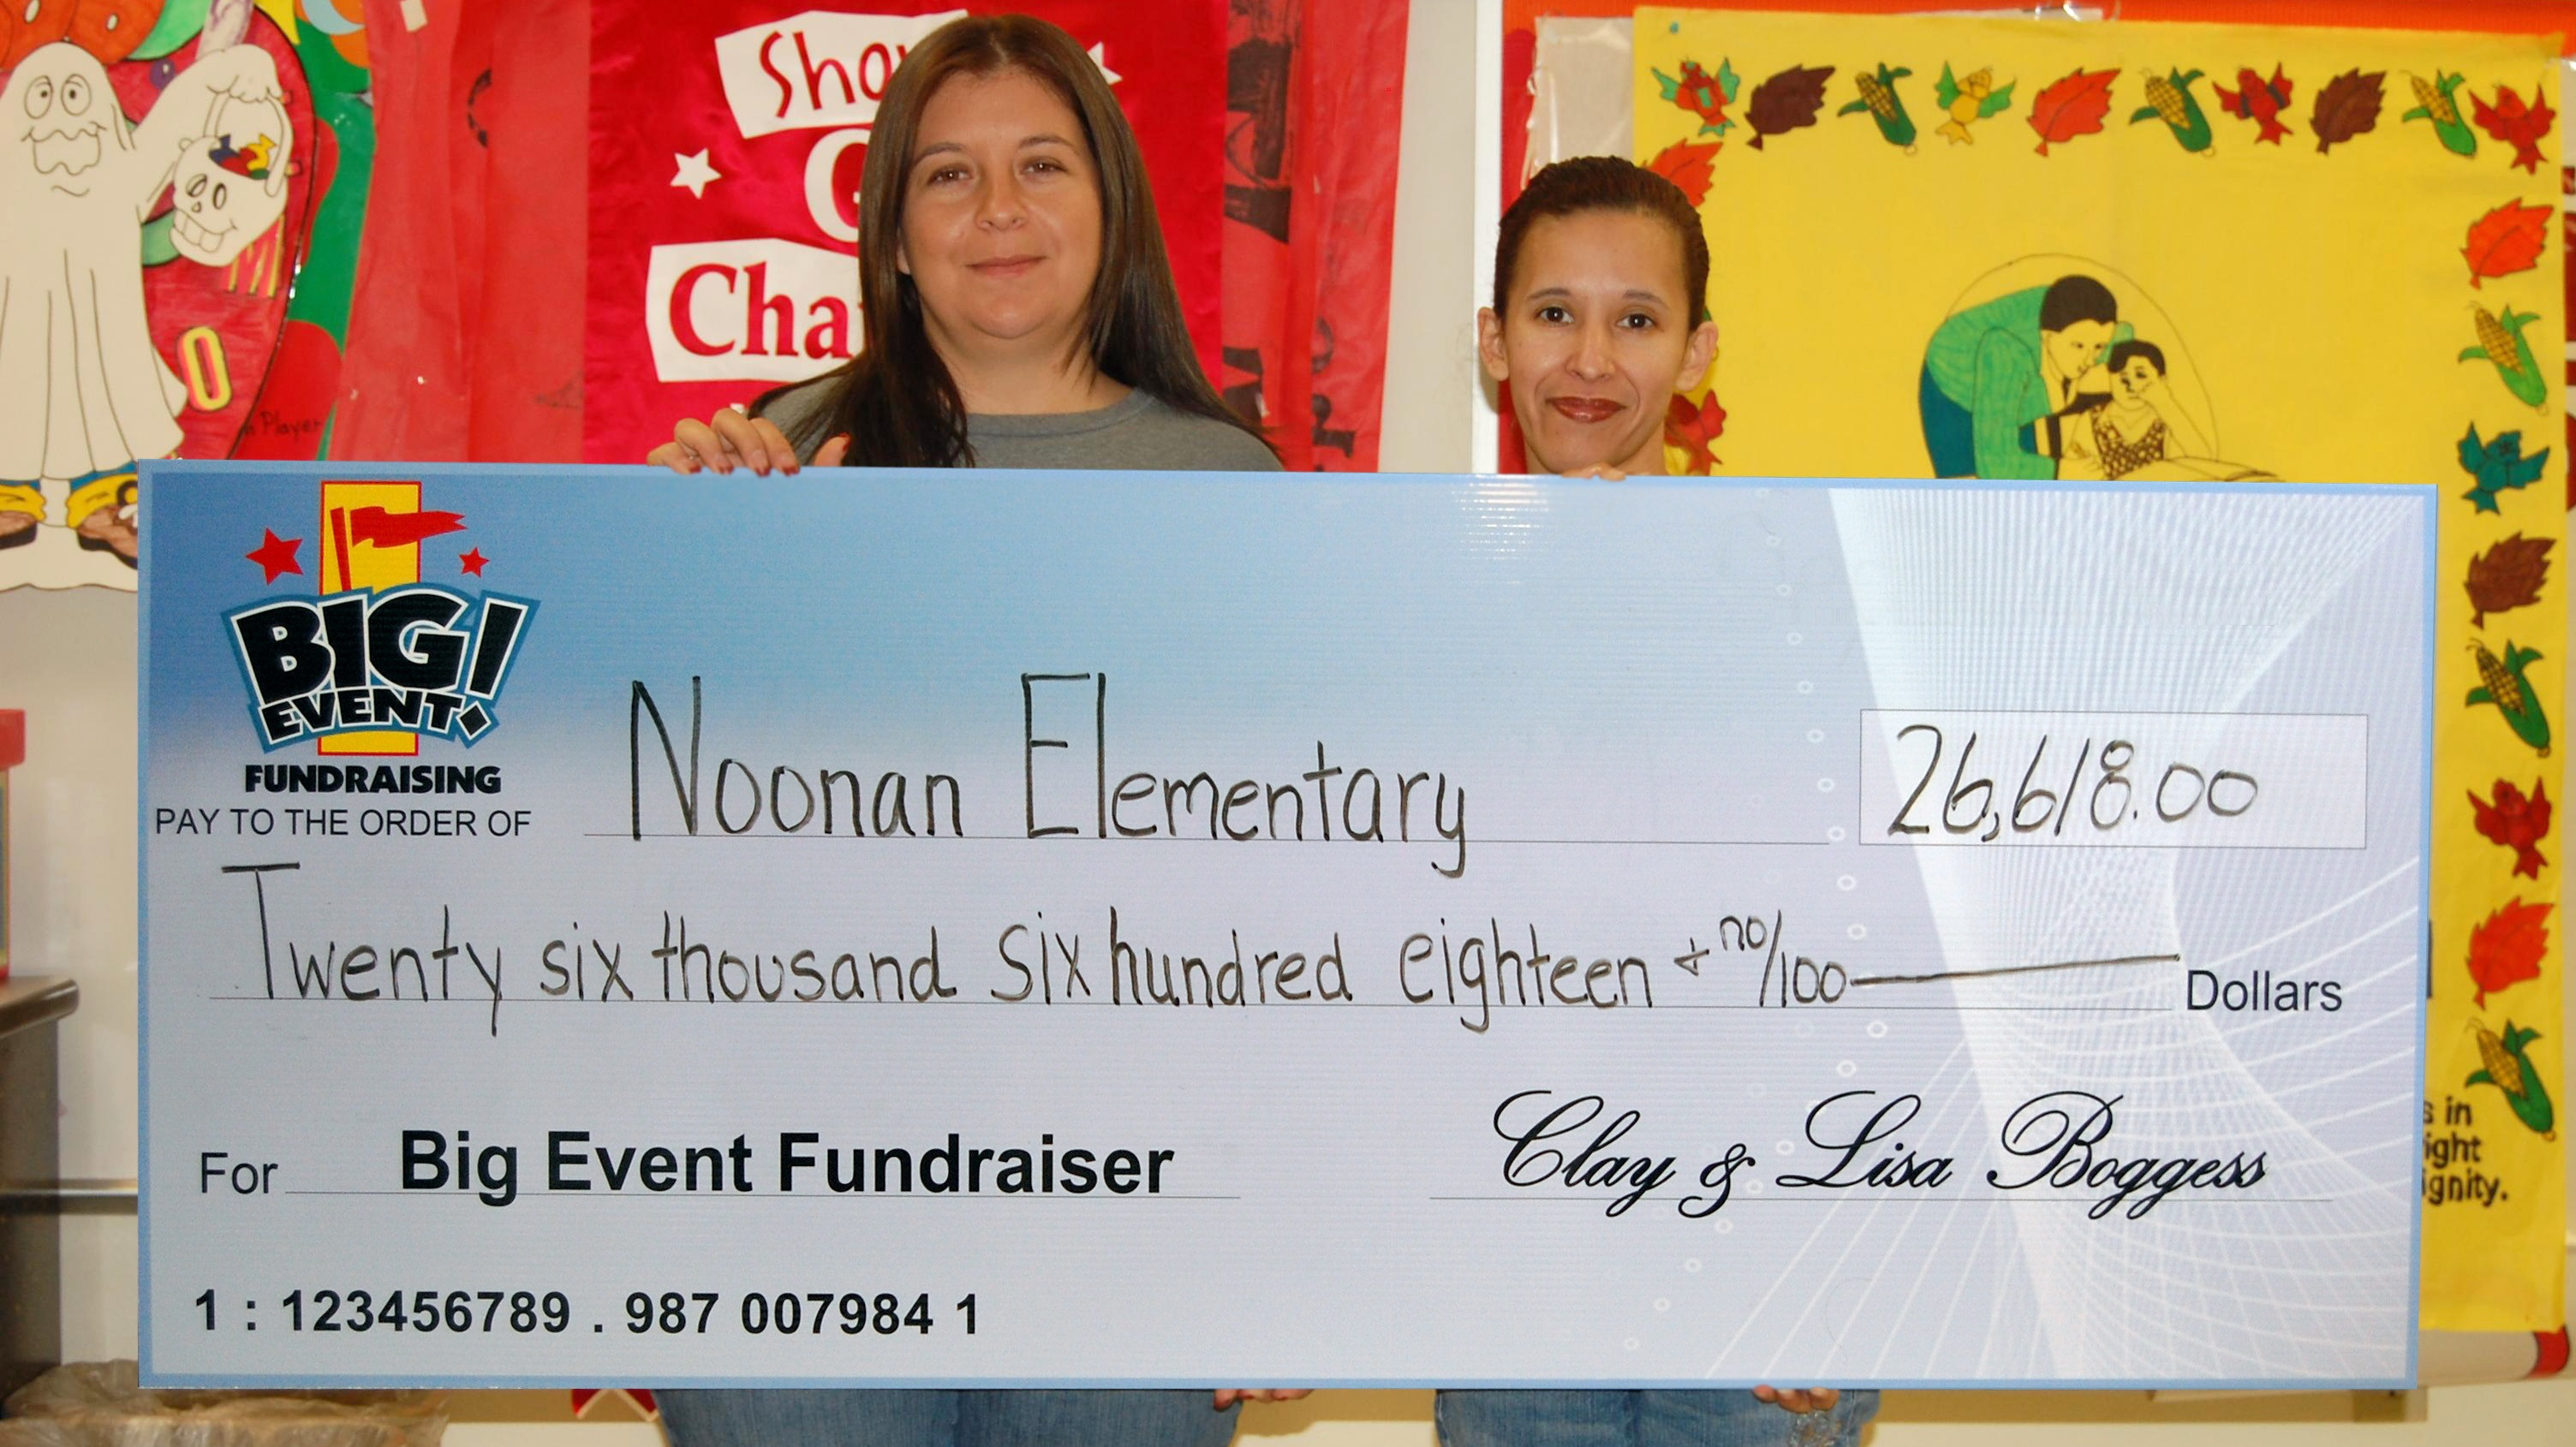 Noonan Elementary School sponsors holding large fundraising check